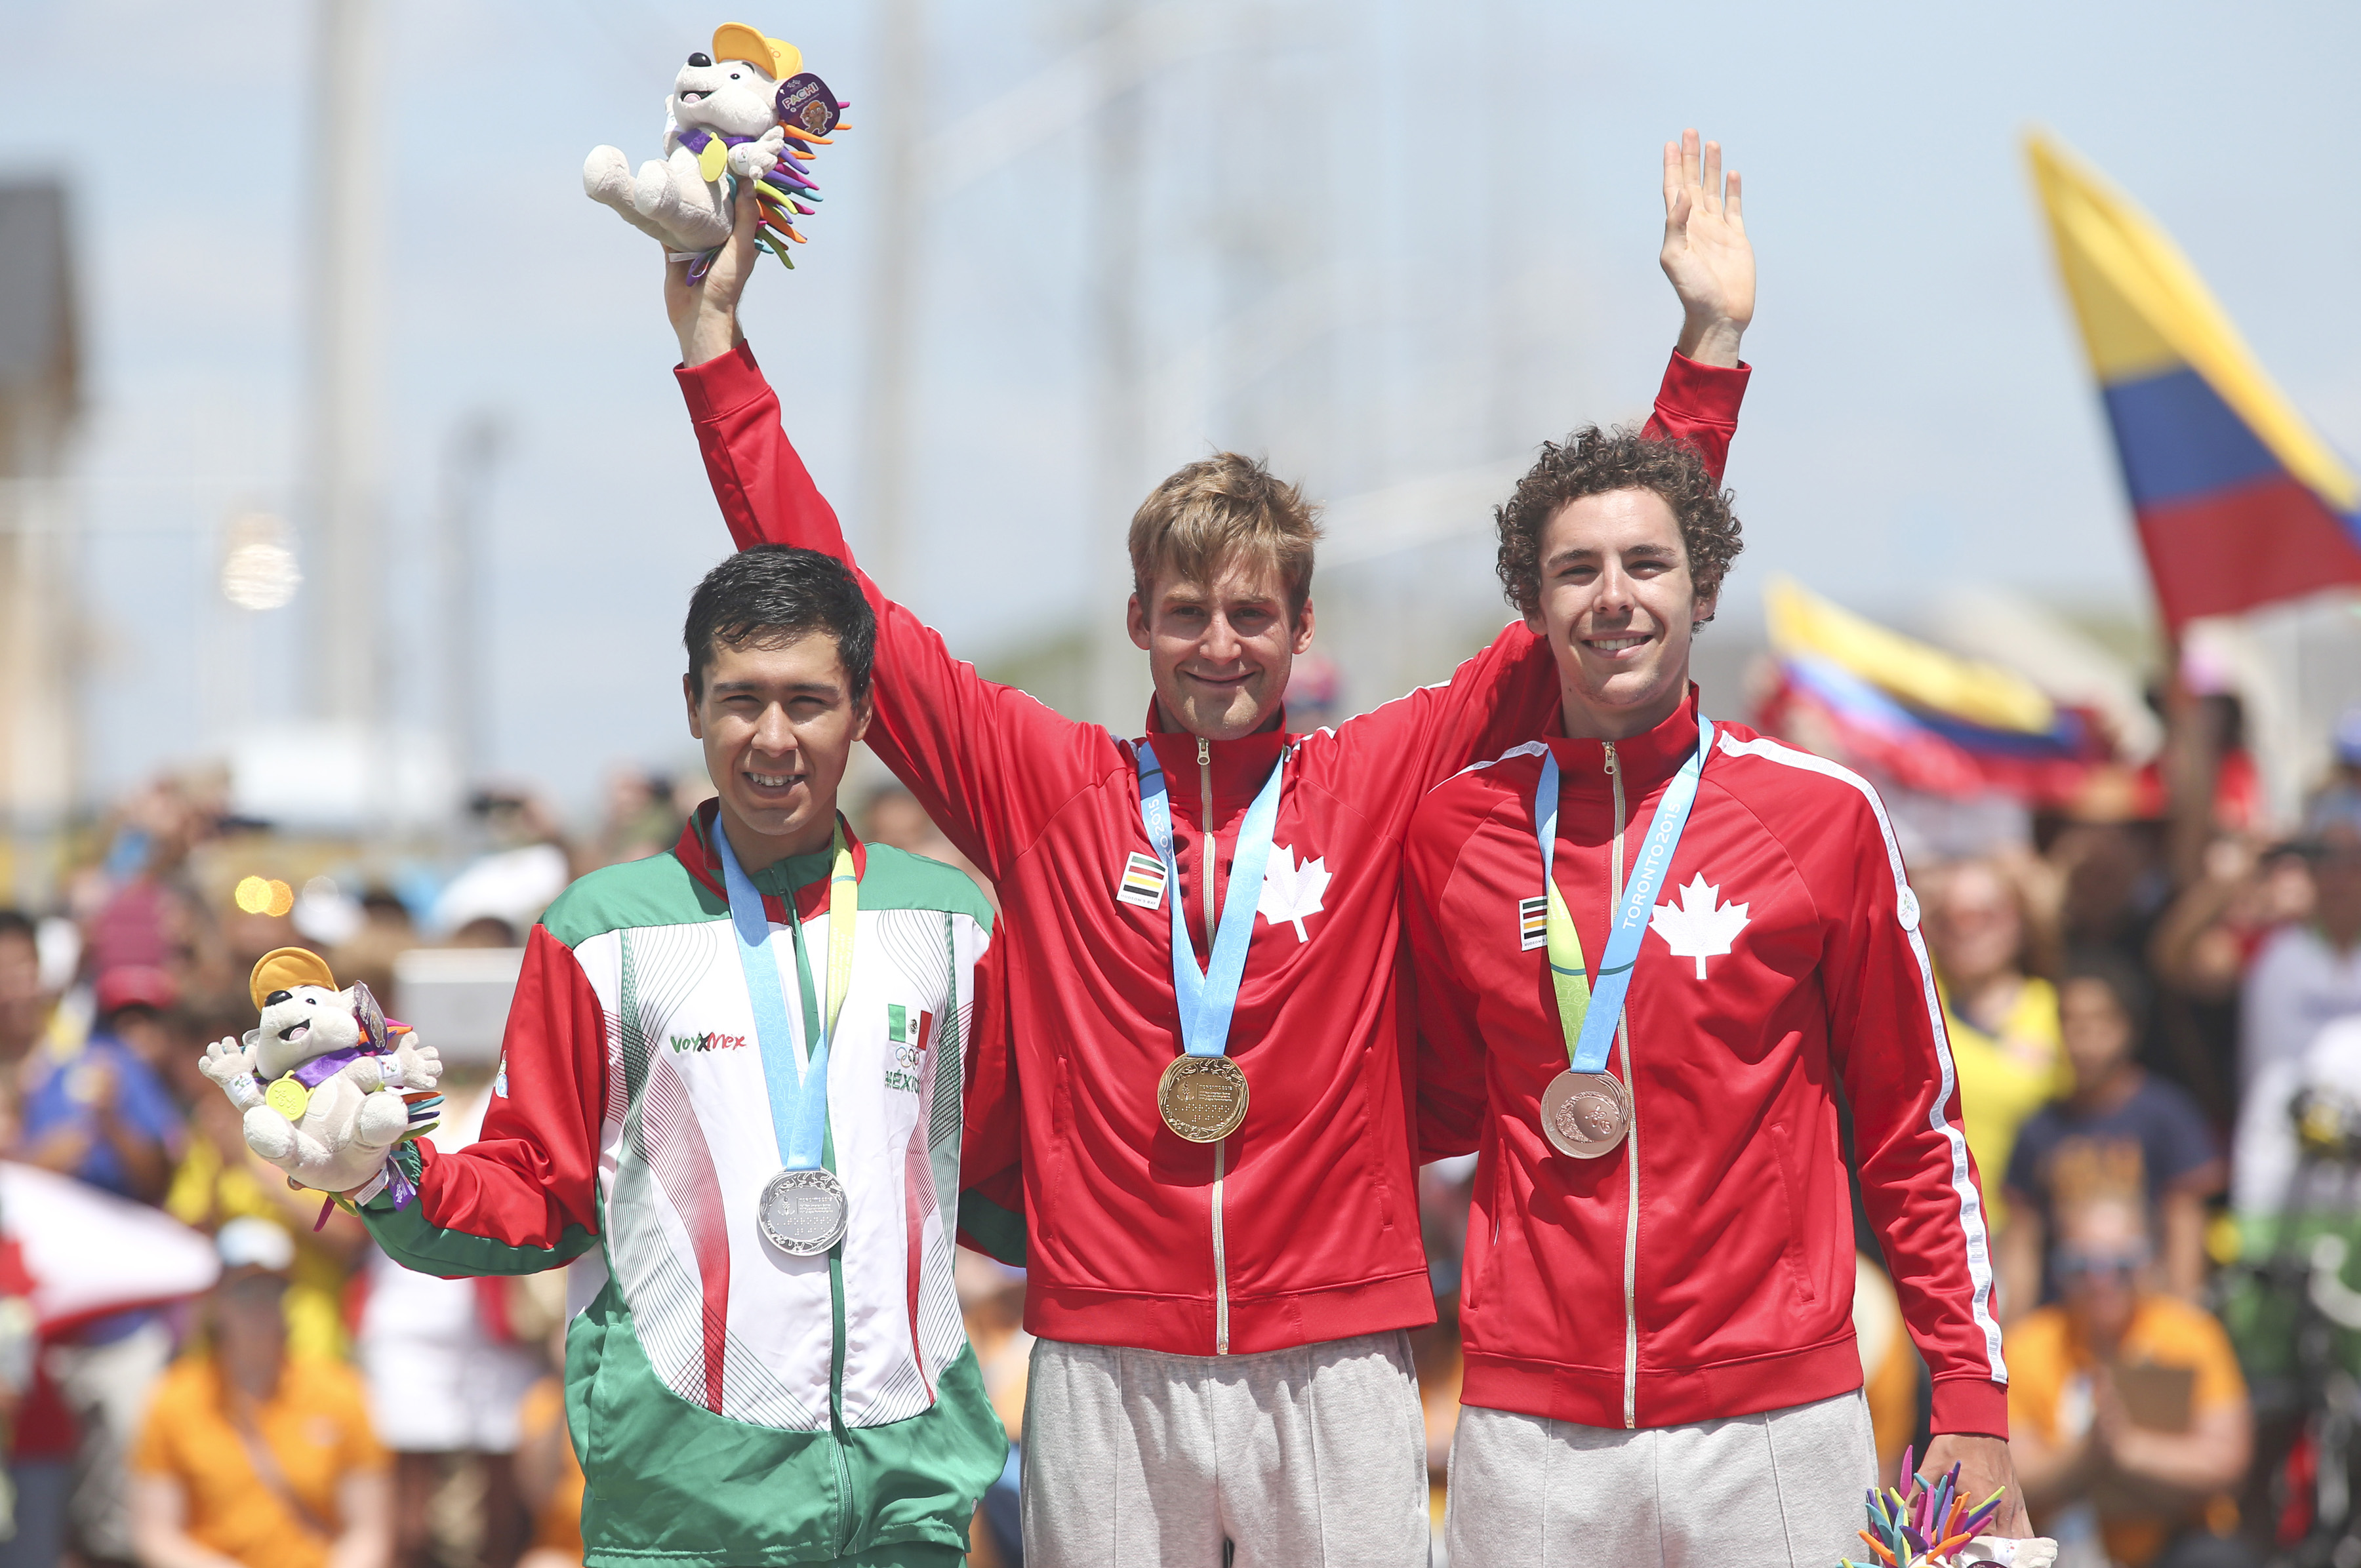 Medalist, from left Ignacio Prado of Mexico, silver, Hugo Houle of Ste-Perpetue, Que, gold and Sean MacKinnon of Hamilton, Ont.. bronze, in the cycling time trial at the Pan American Games in Milton, Ont., Tuesday, July 21, 2015. Photo by Mike Ridewood/COC